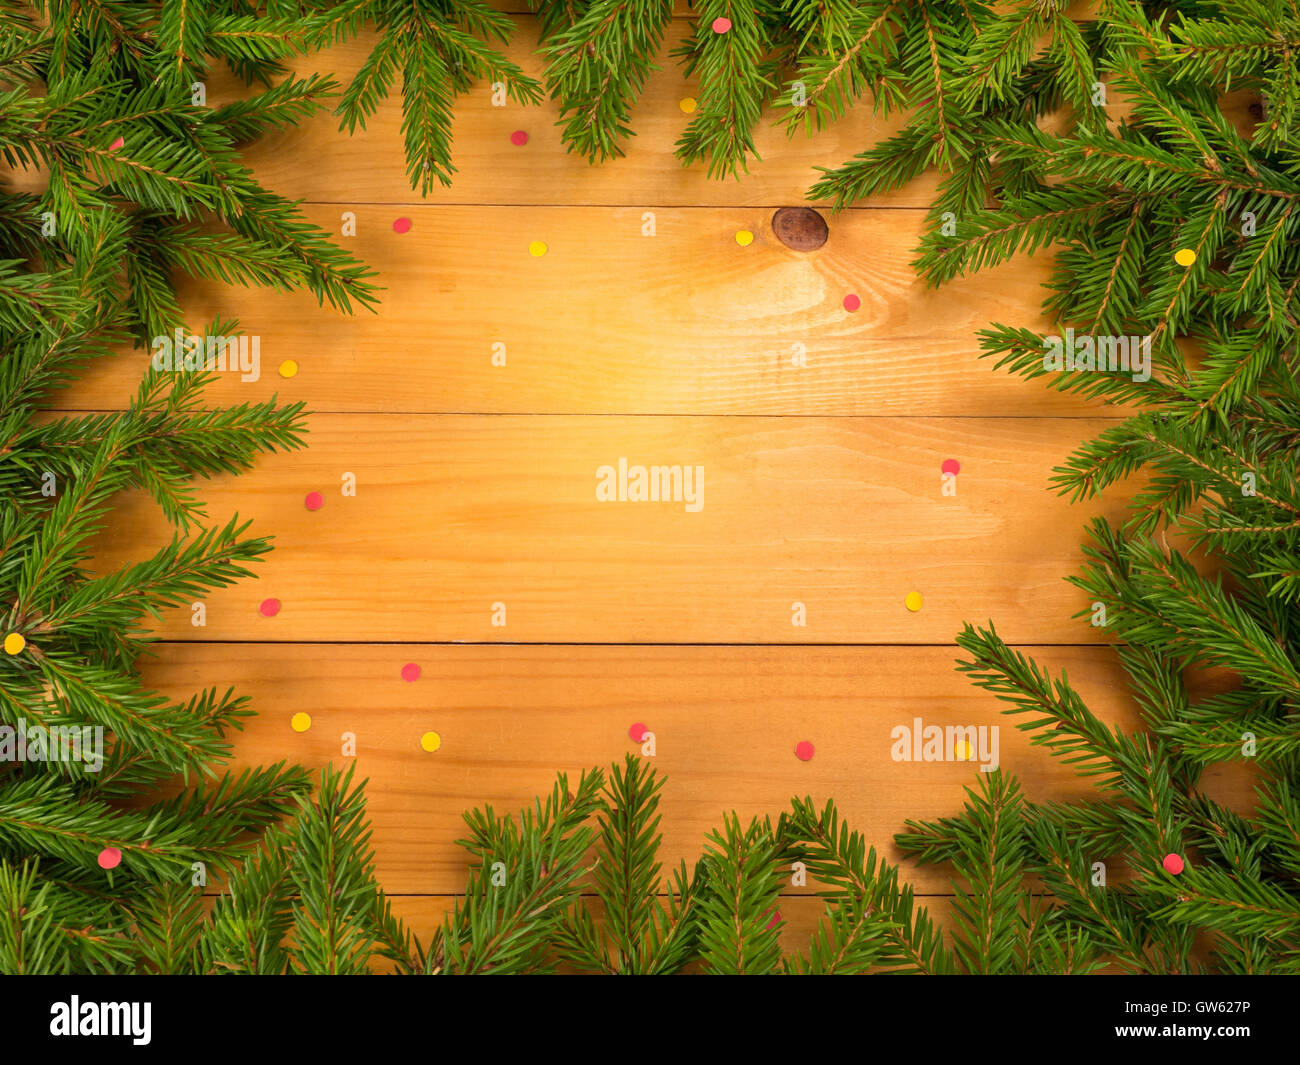 Christmas tree branches frame on the wooden planks background sprinkled with red and yellow confetti - Stock Image